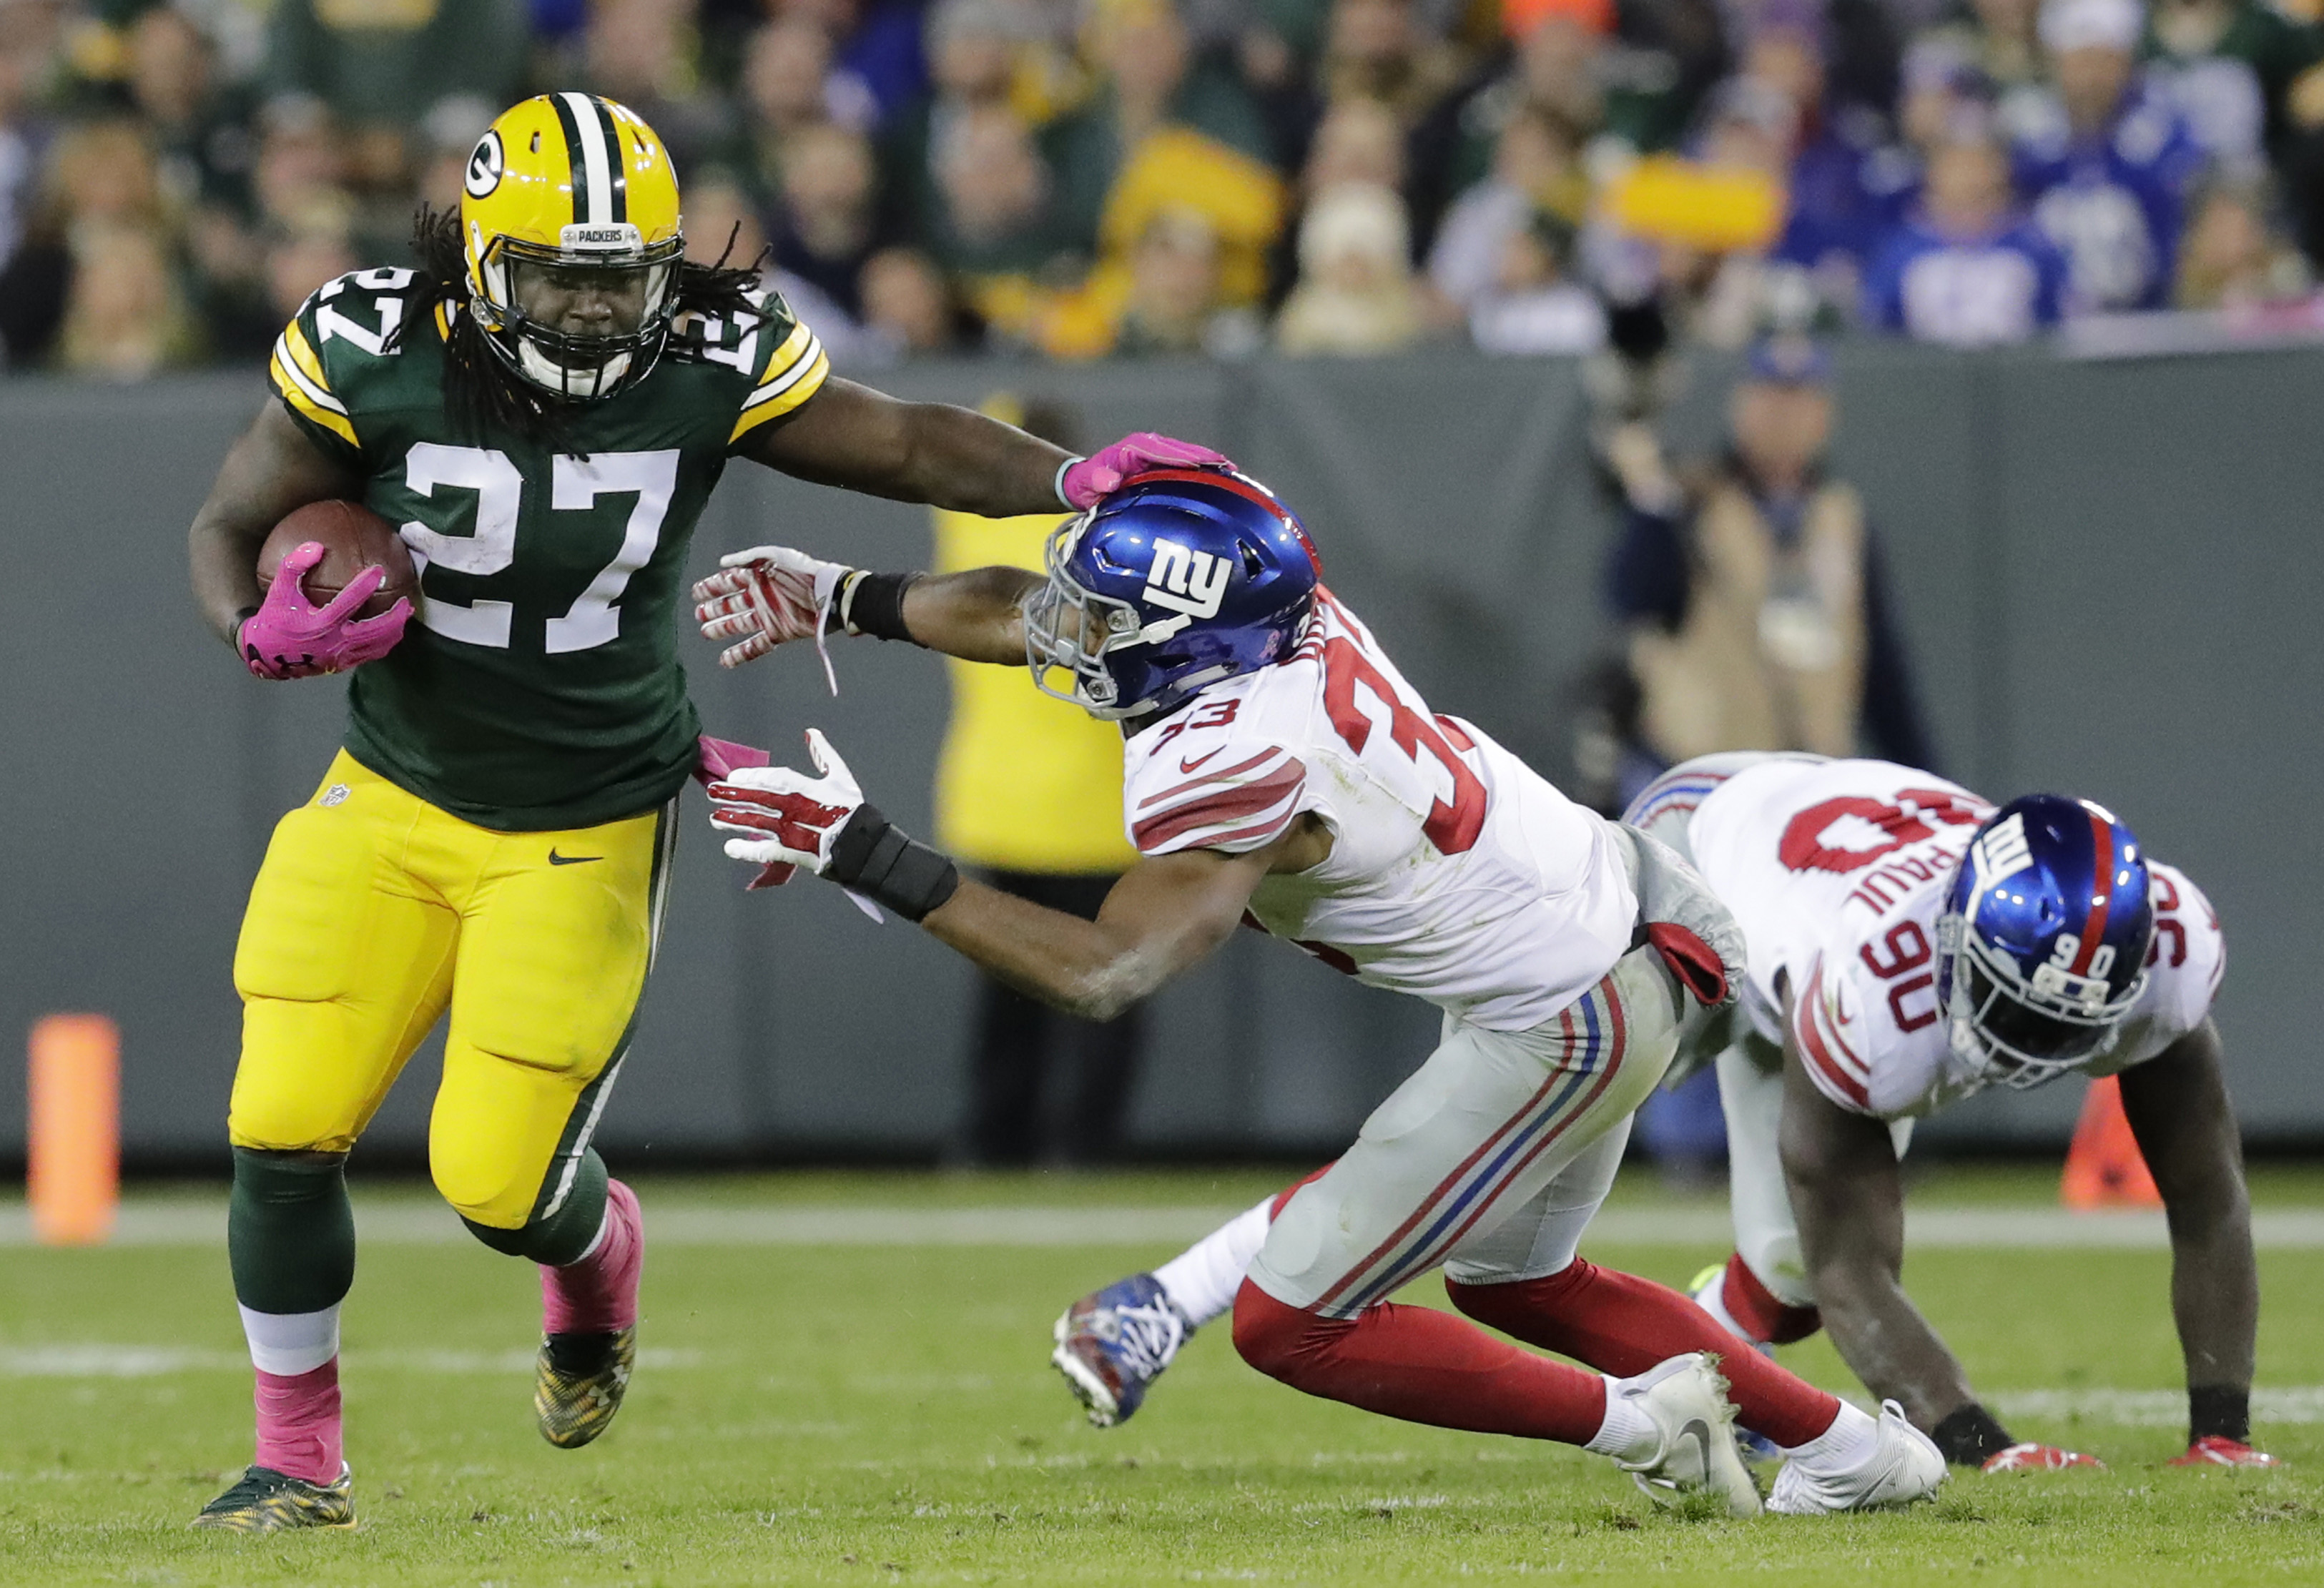 9599683-nfl-new-york-giants-at-green-bay-packers